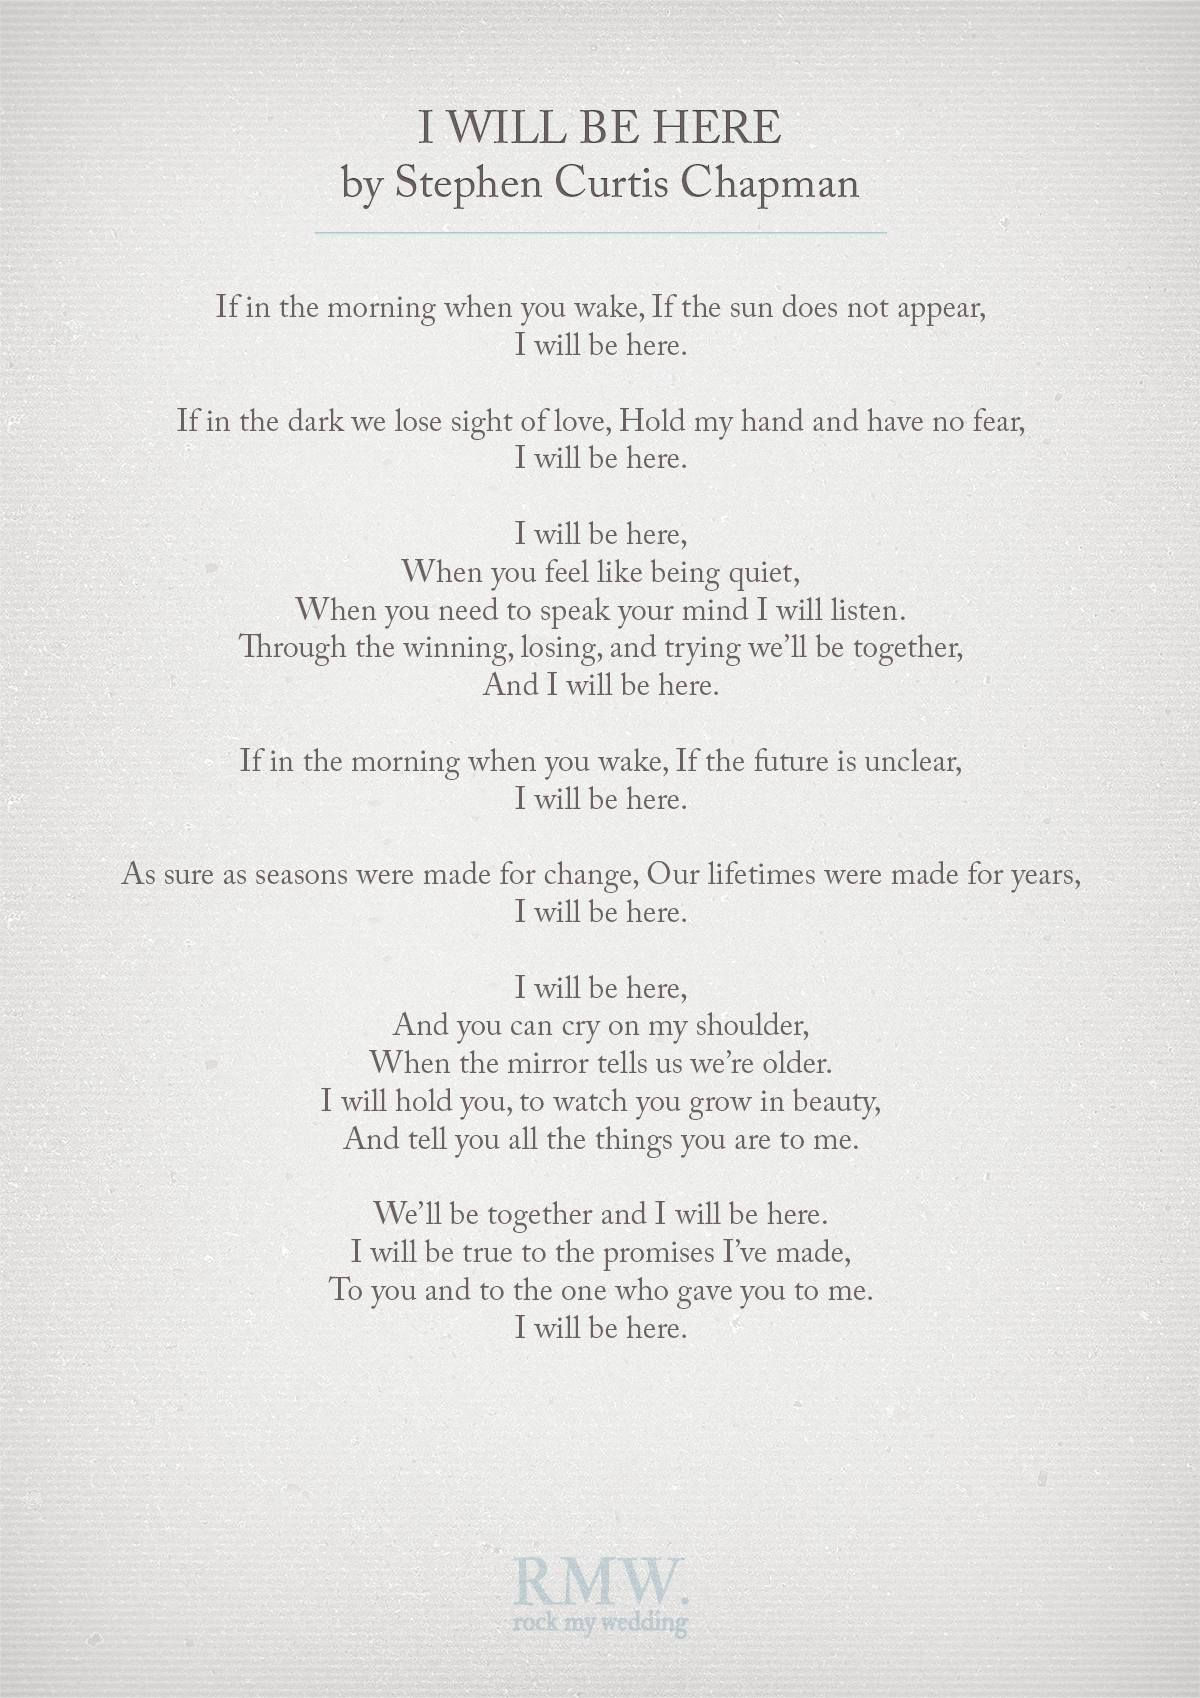 I Will Be Here By Stephen Curtis Chapman Wedding Vows Reading For Ceremony